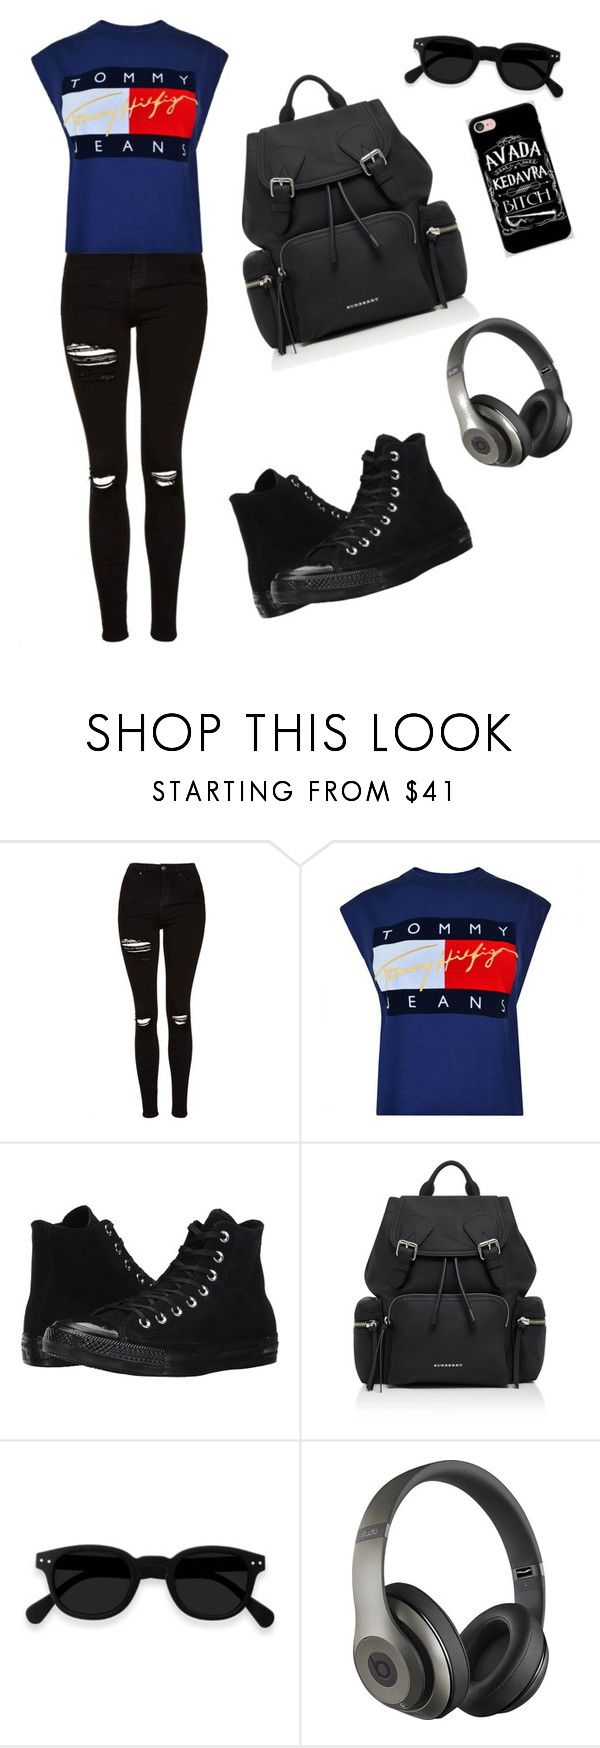 """""""Traveling😊😊"""" by esii-li ❤ liked on Polyvore featuring Topshop, Tommy Hilfiger, Converse, Burberry, Beats by Dr. Dre and Samsung"""